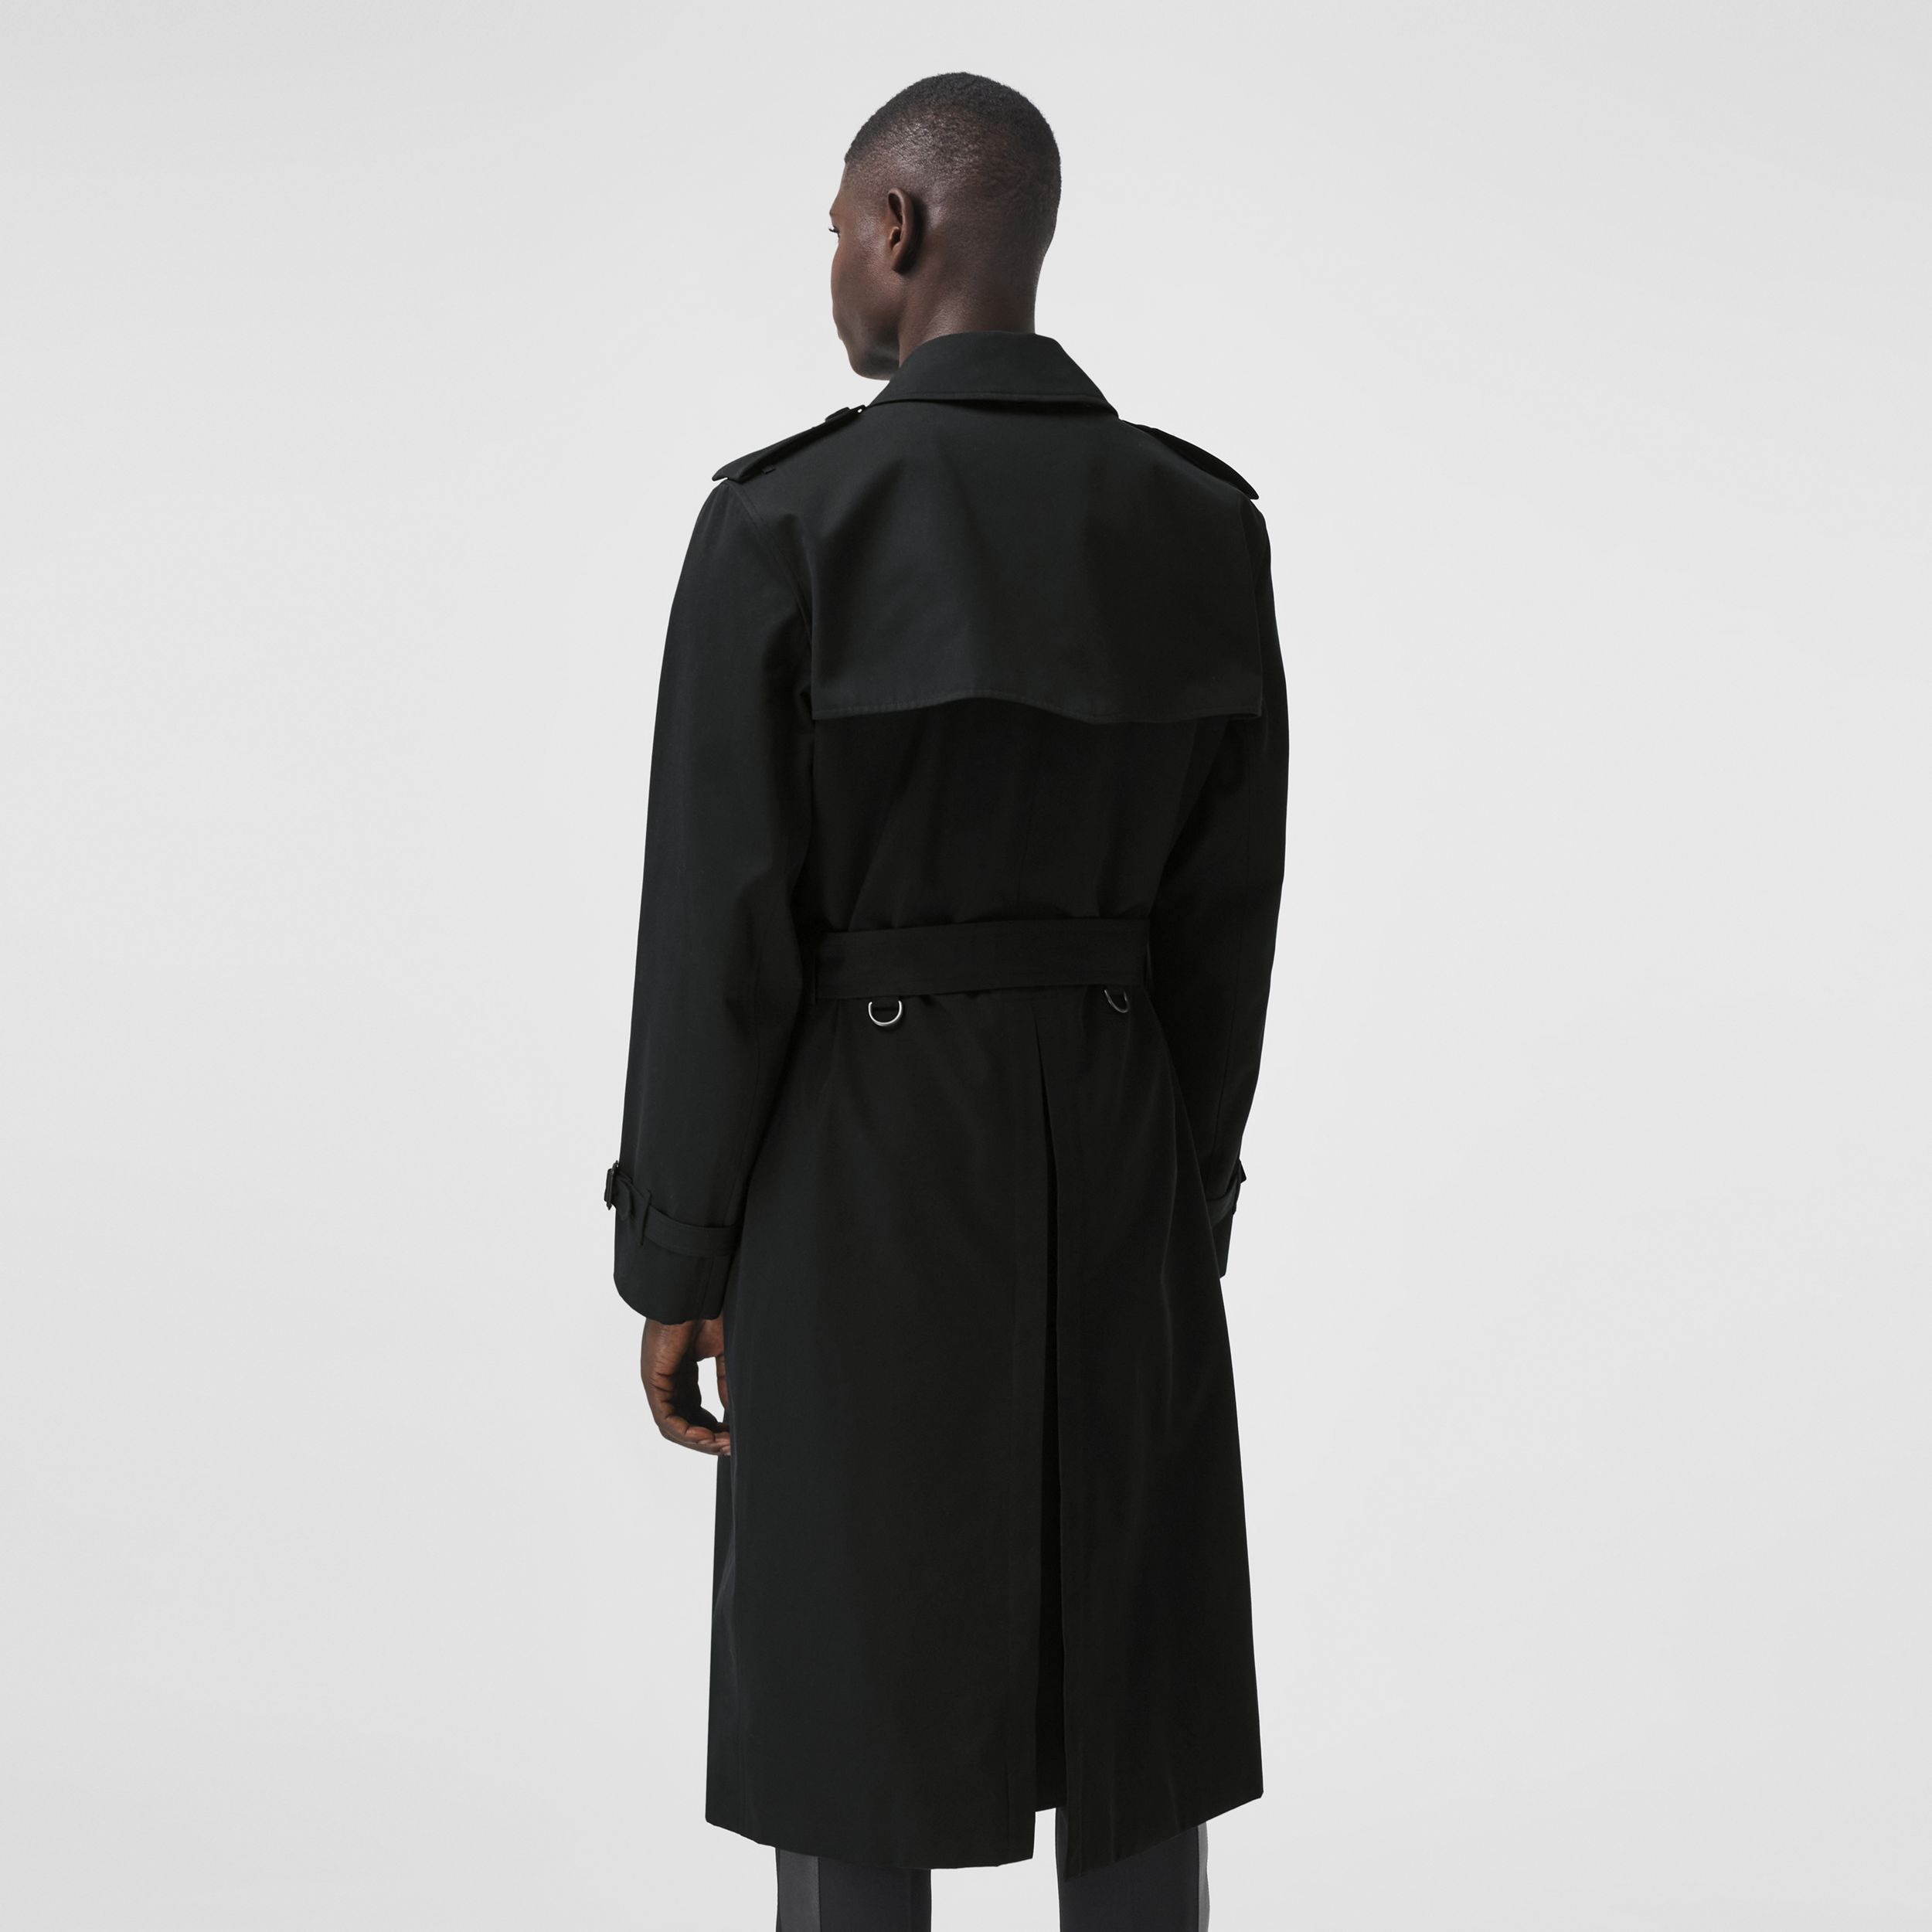 Logo Detail Cotton Gabardine Trench Coat in Black - Men | Burberry Canada - 3